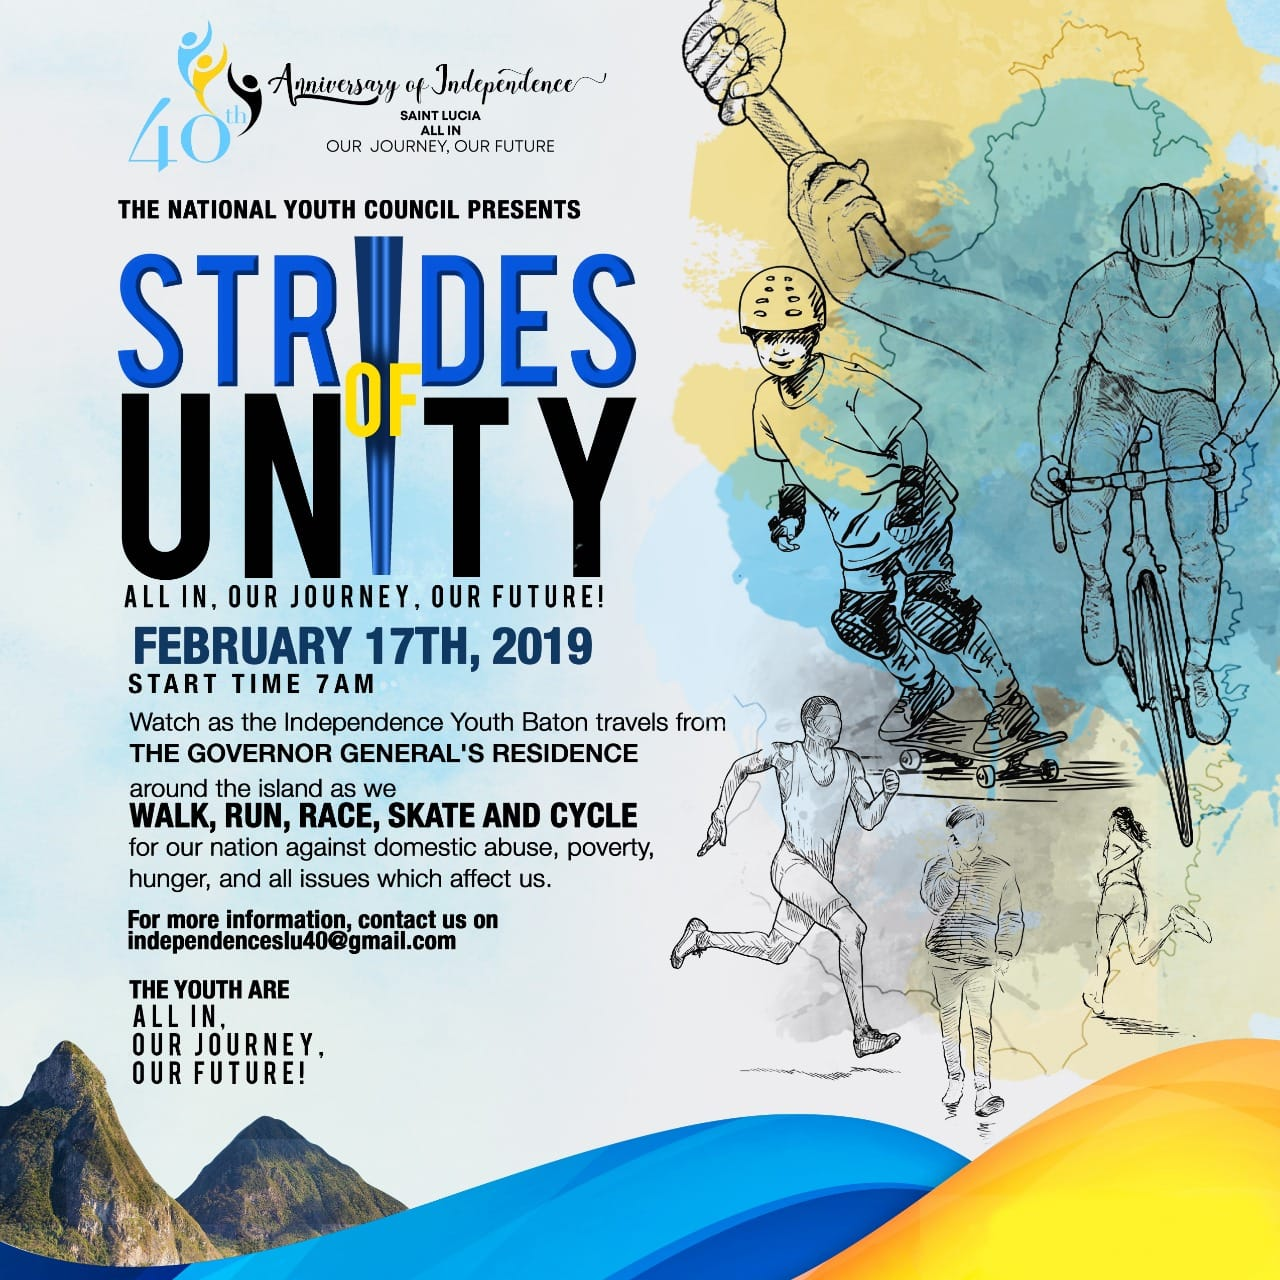 what to do in saint lucia 40th anniversary of independence national youth council round the island baton run